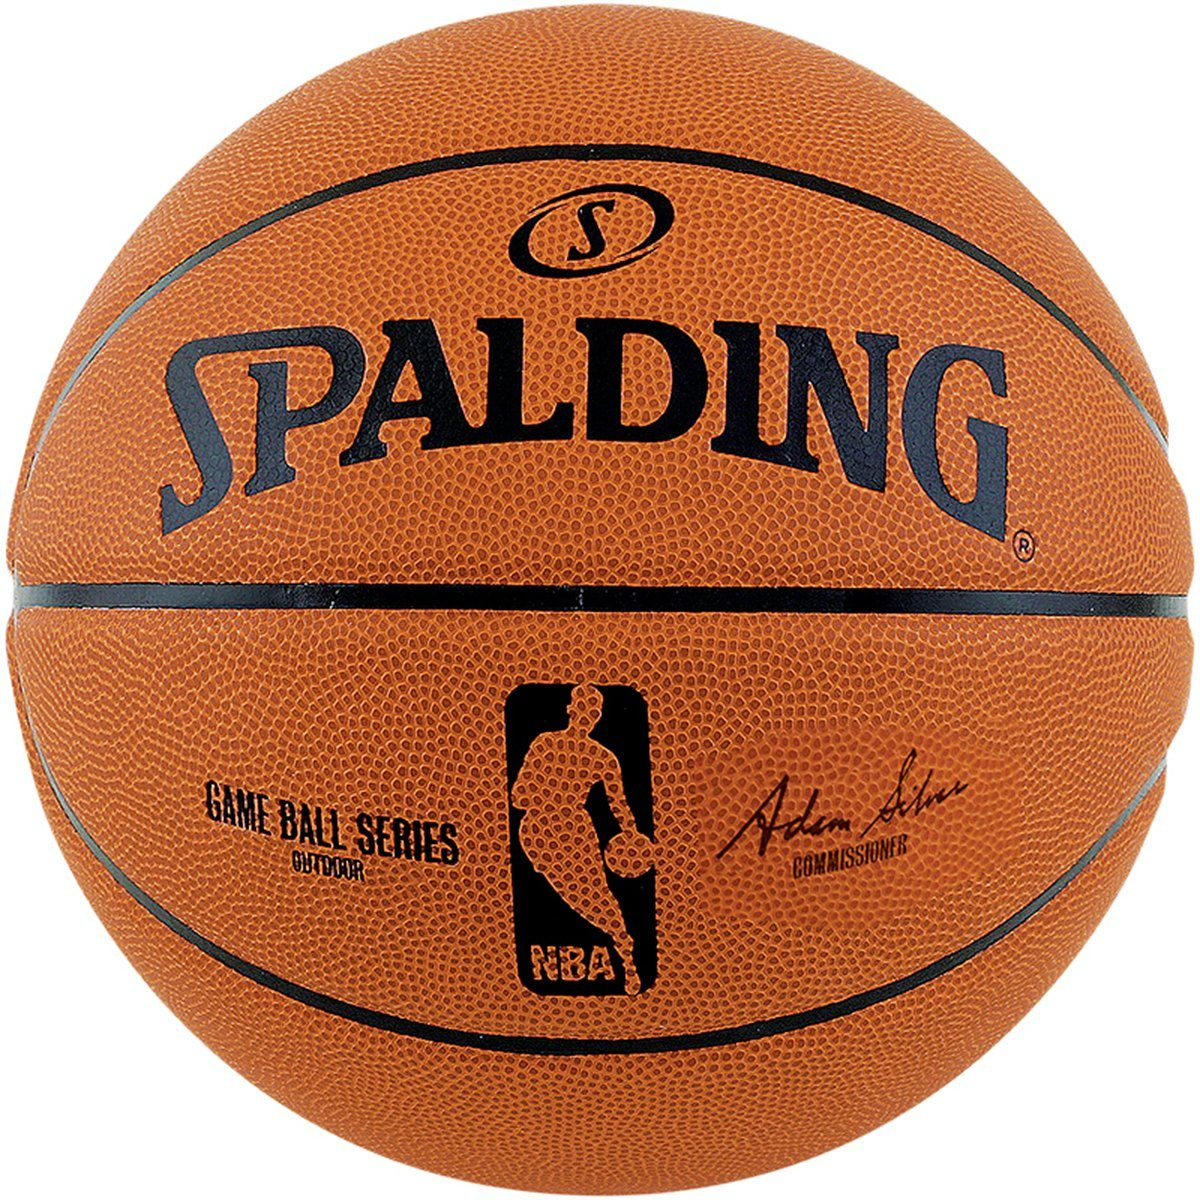 SPALDING NBA Gameball Replica Outdoor Basketball